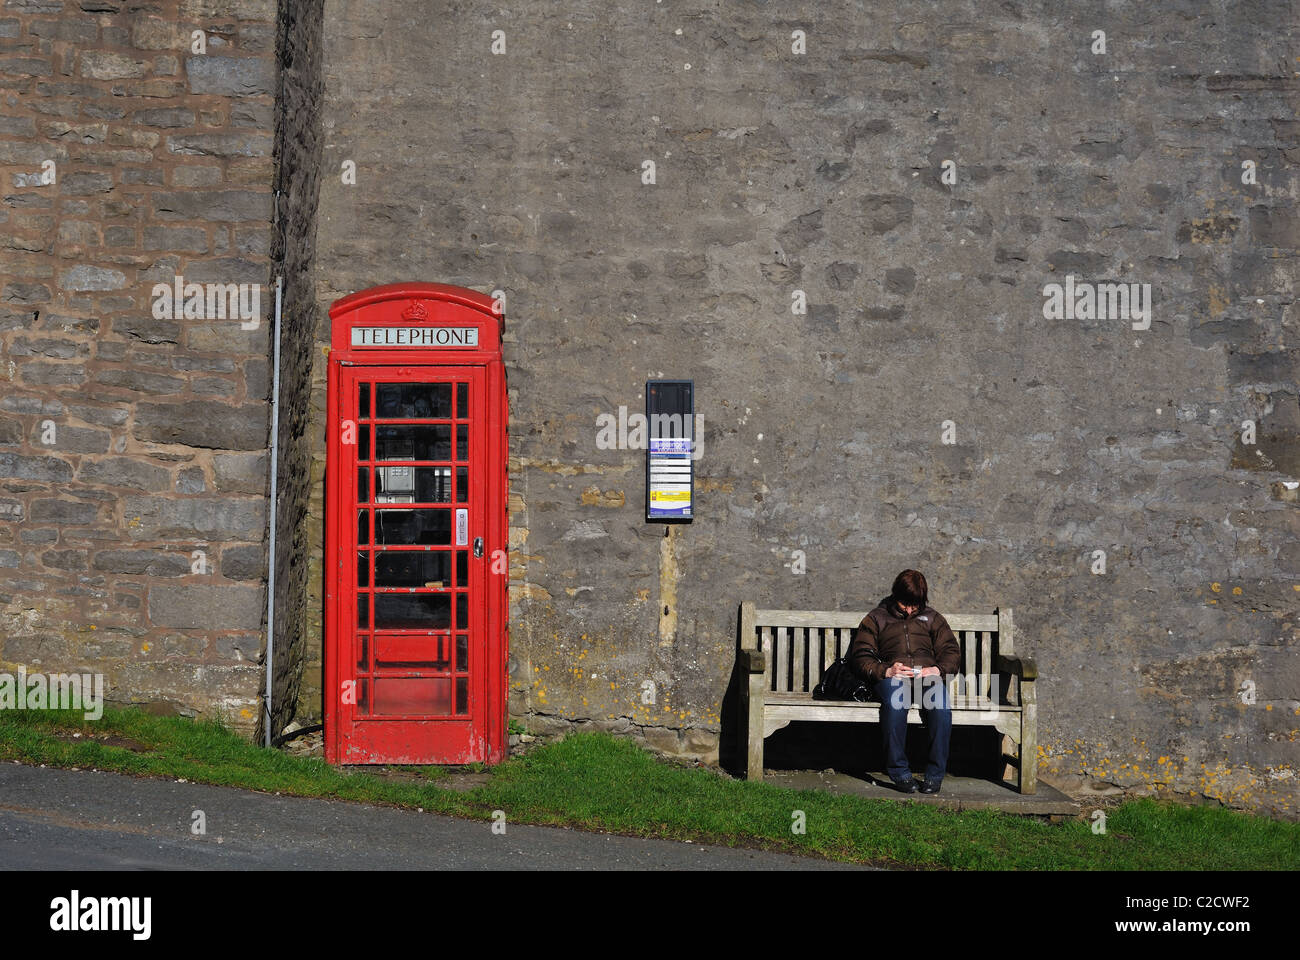 woman sat on a bench next to red telephone box texting on a mobile phone - Stock Image